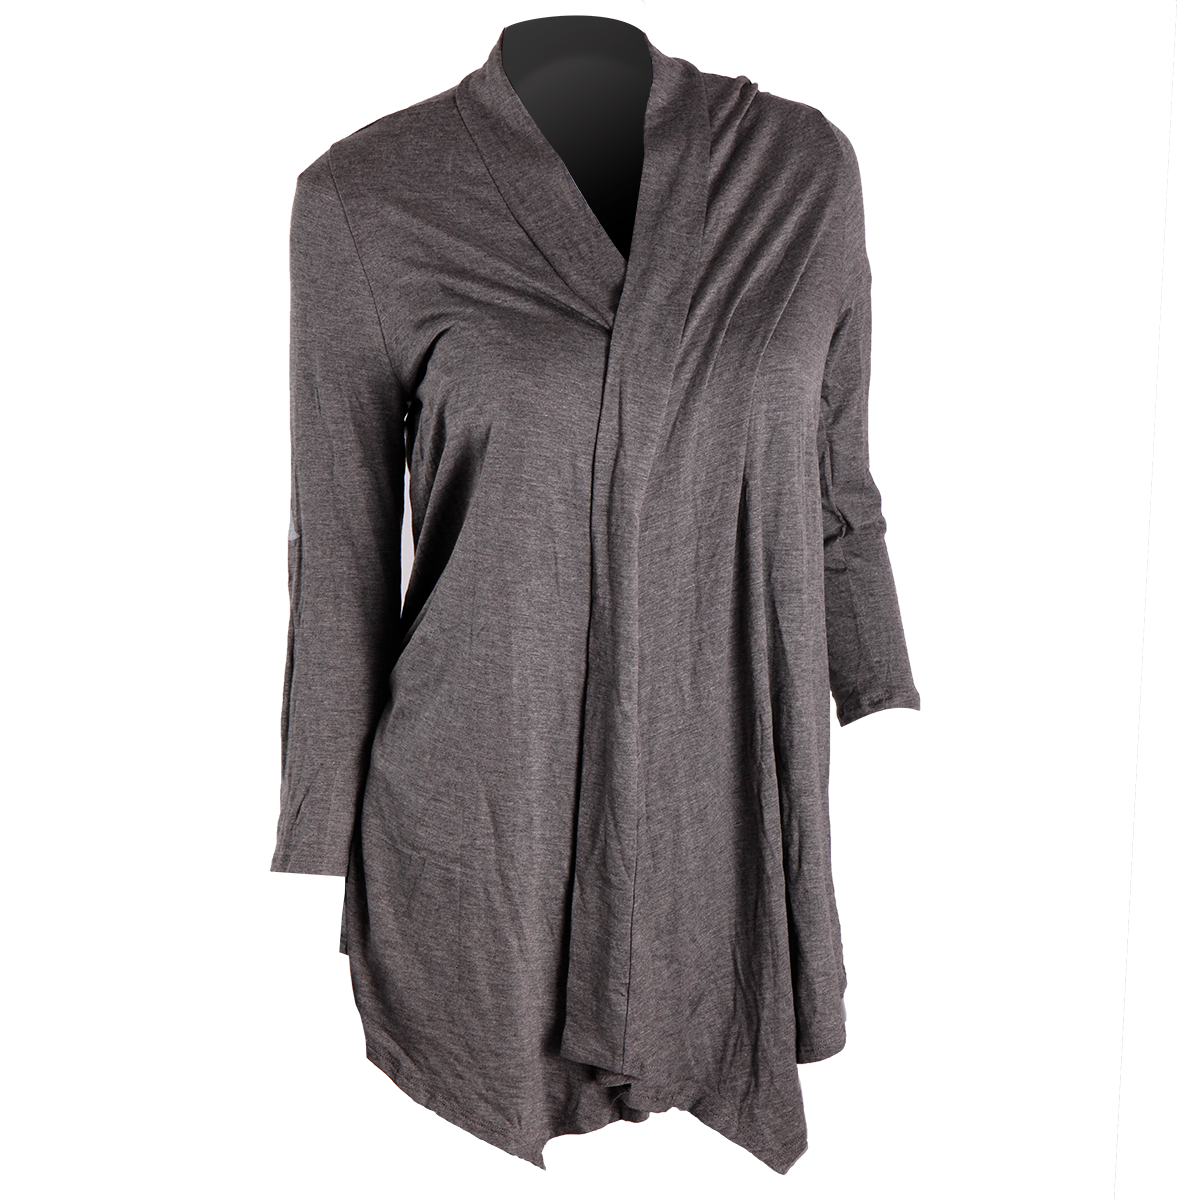 Ladies' Bracelet-Sleeve Cardigan